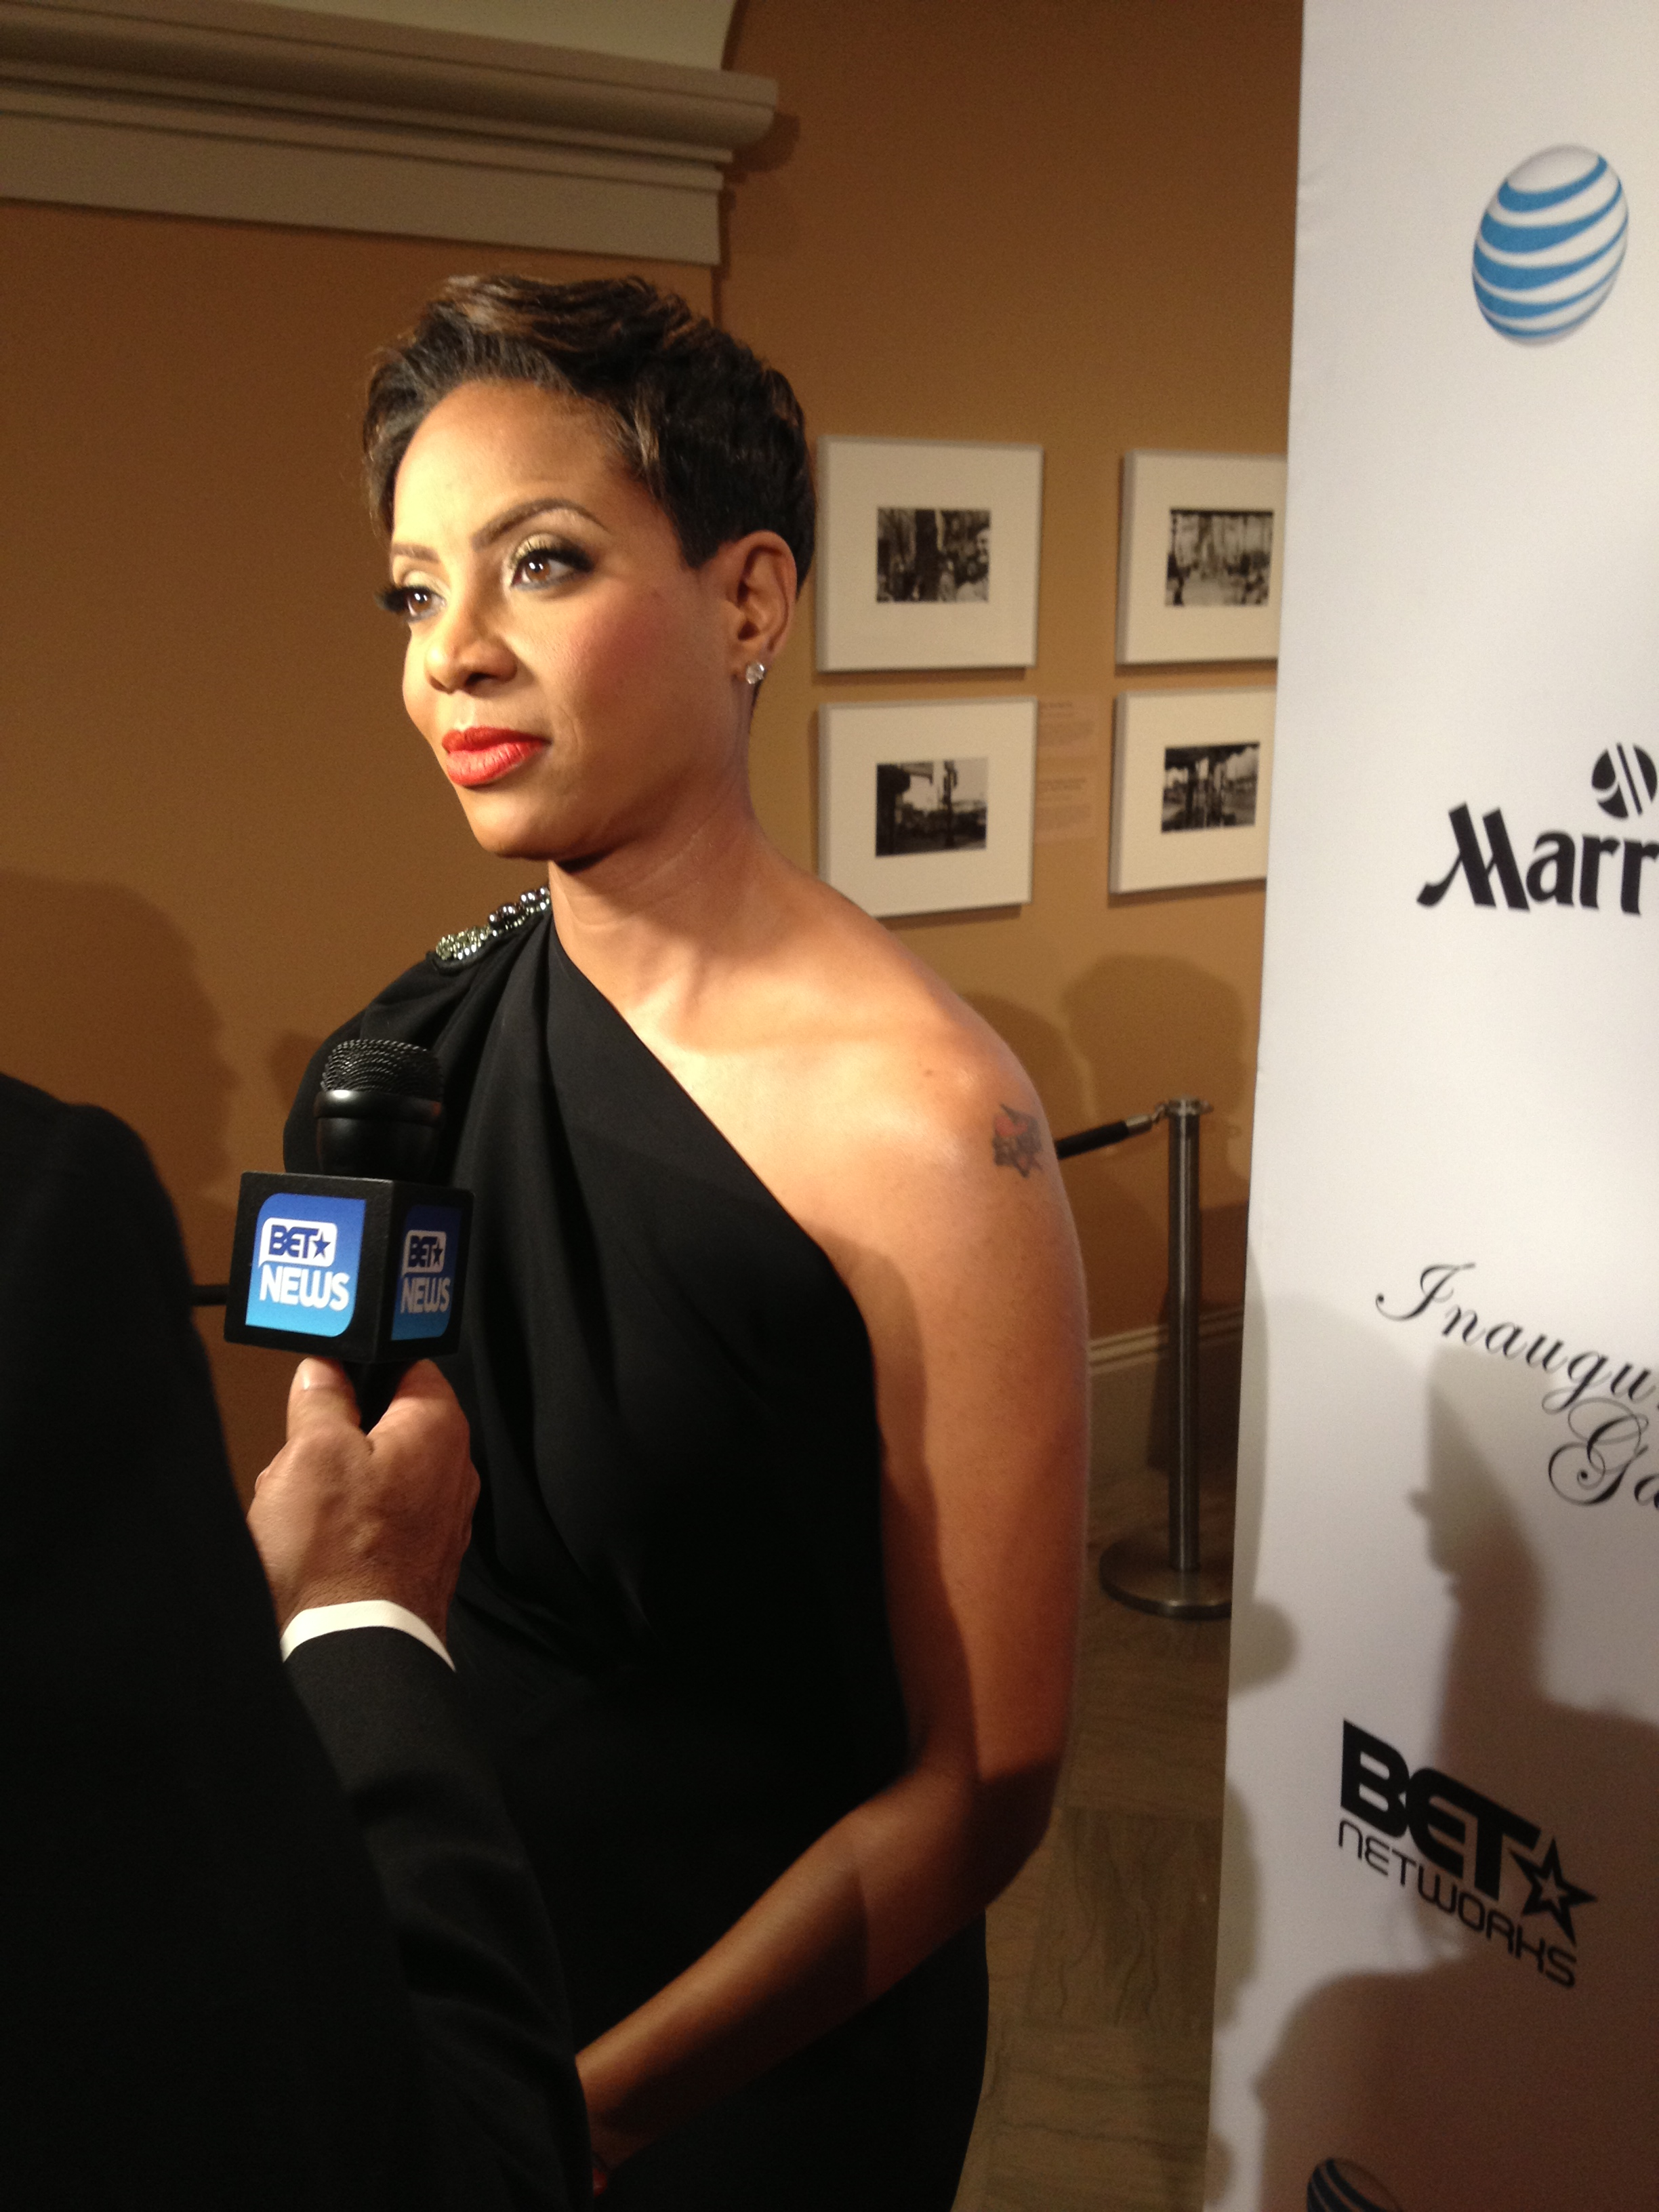 MC Lyte BET inaugural ball